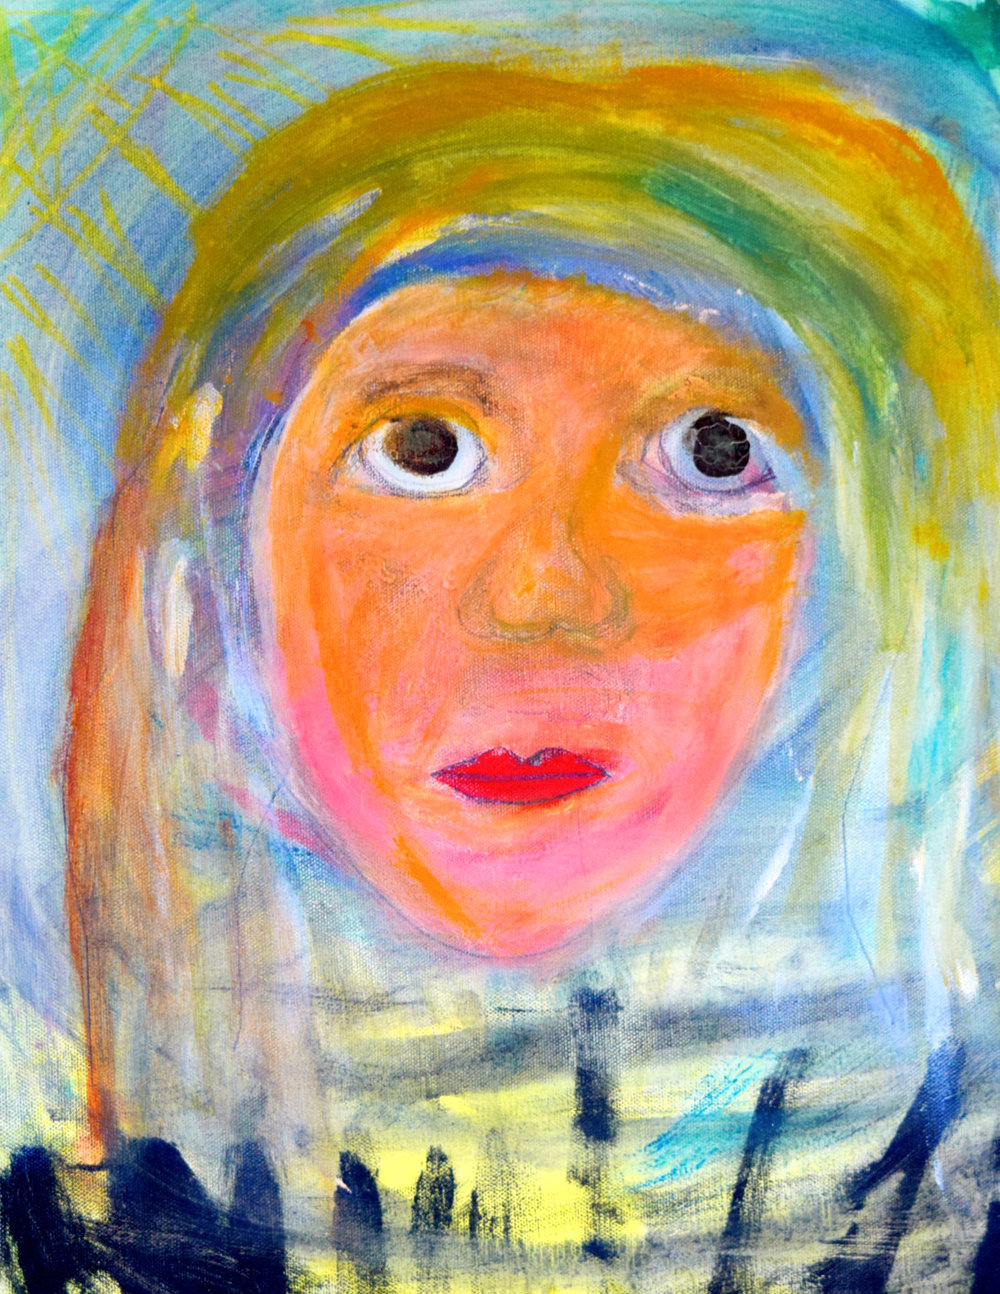 The Homeless Girl Morgan West Acrylic on canvas  11 x 14 Print $45